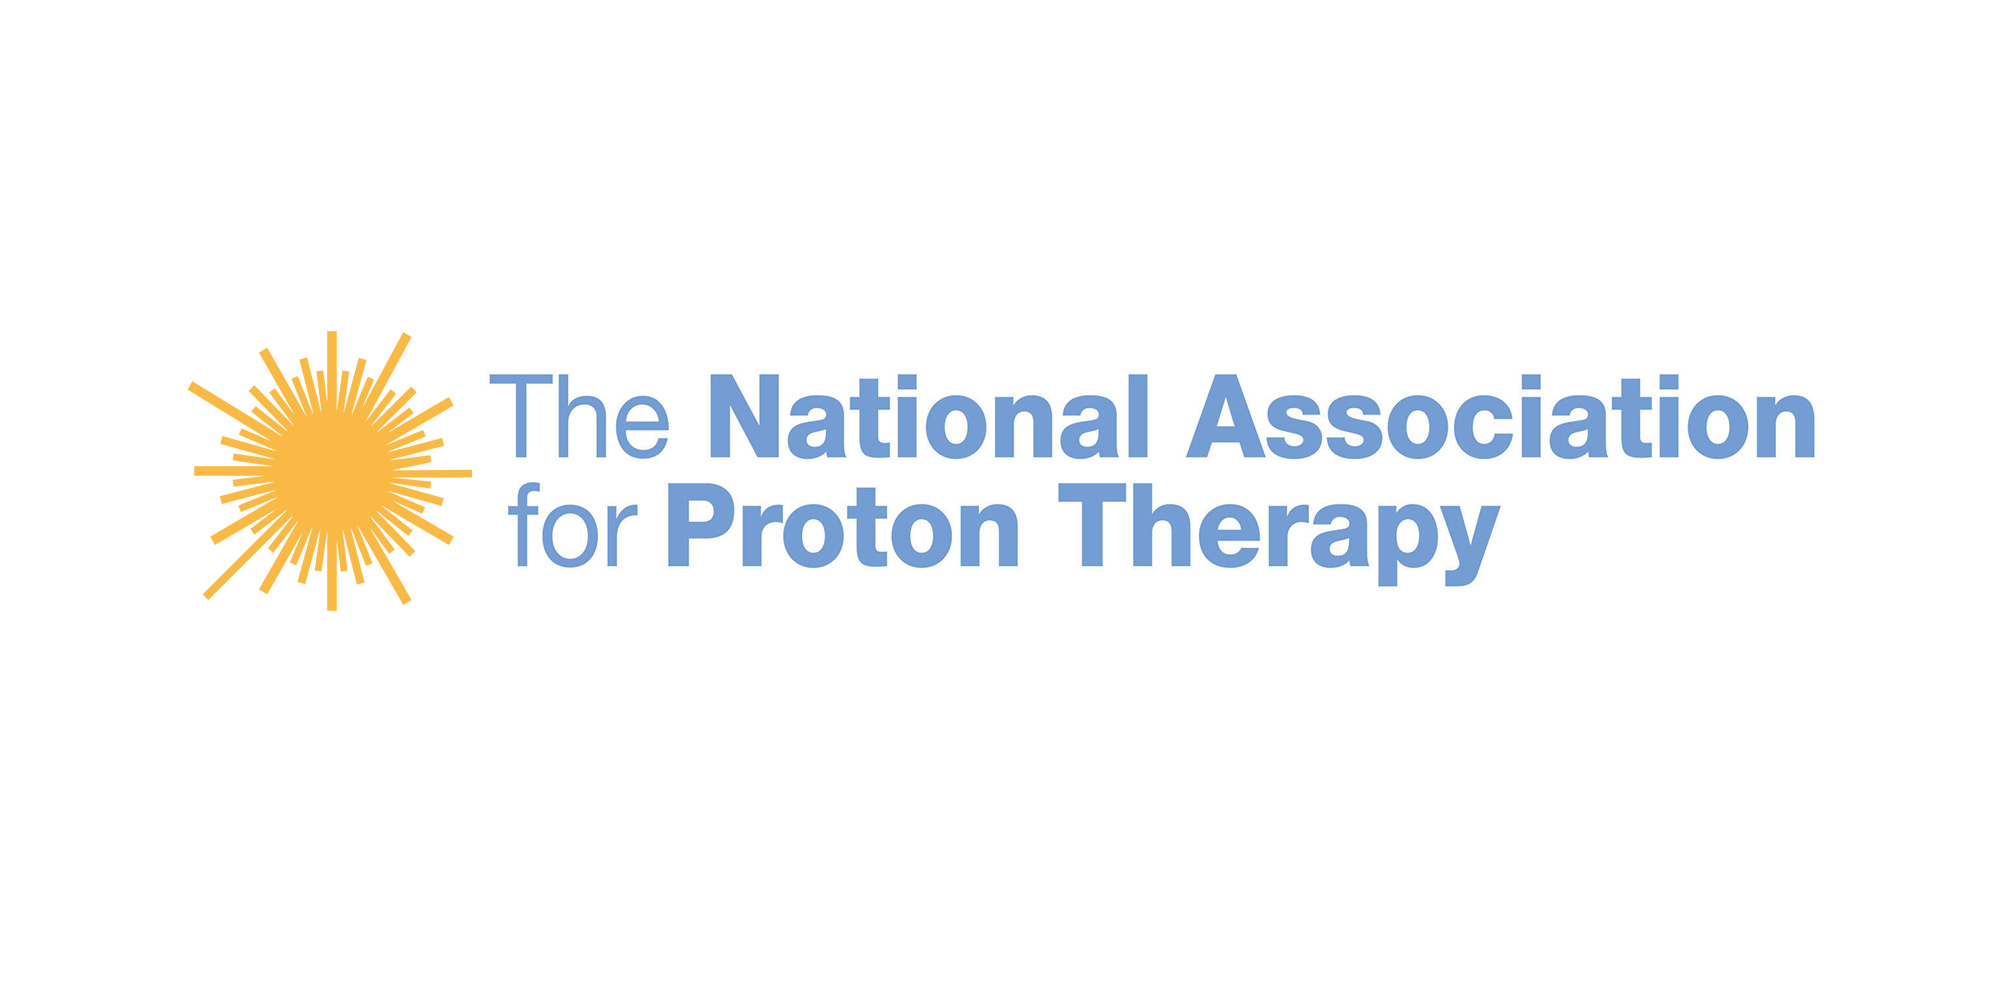 NAPT celebrates 30 years of supporting access to proton therapy